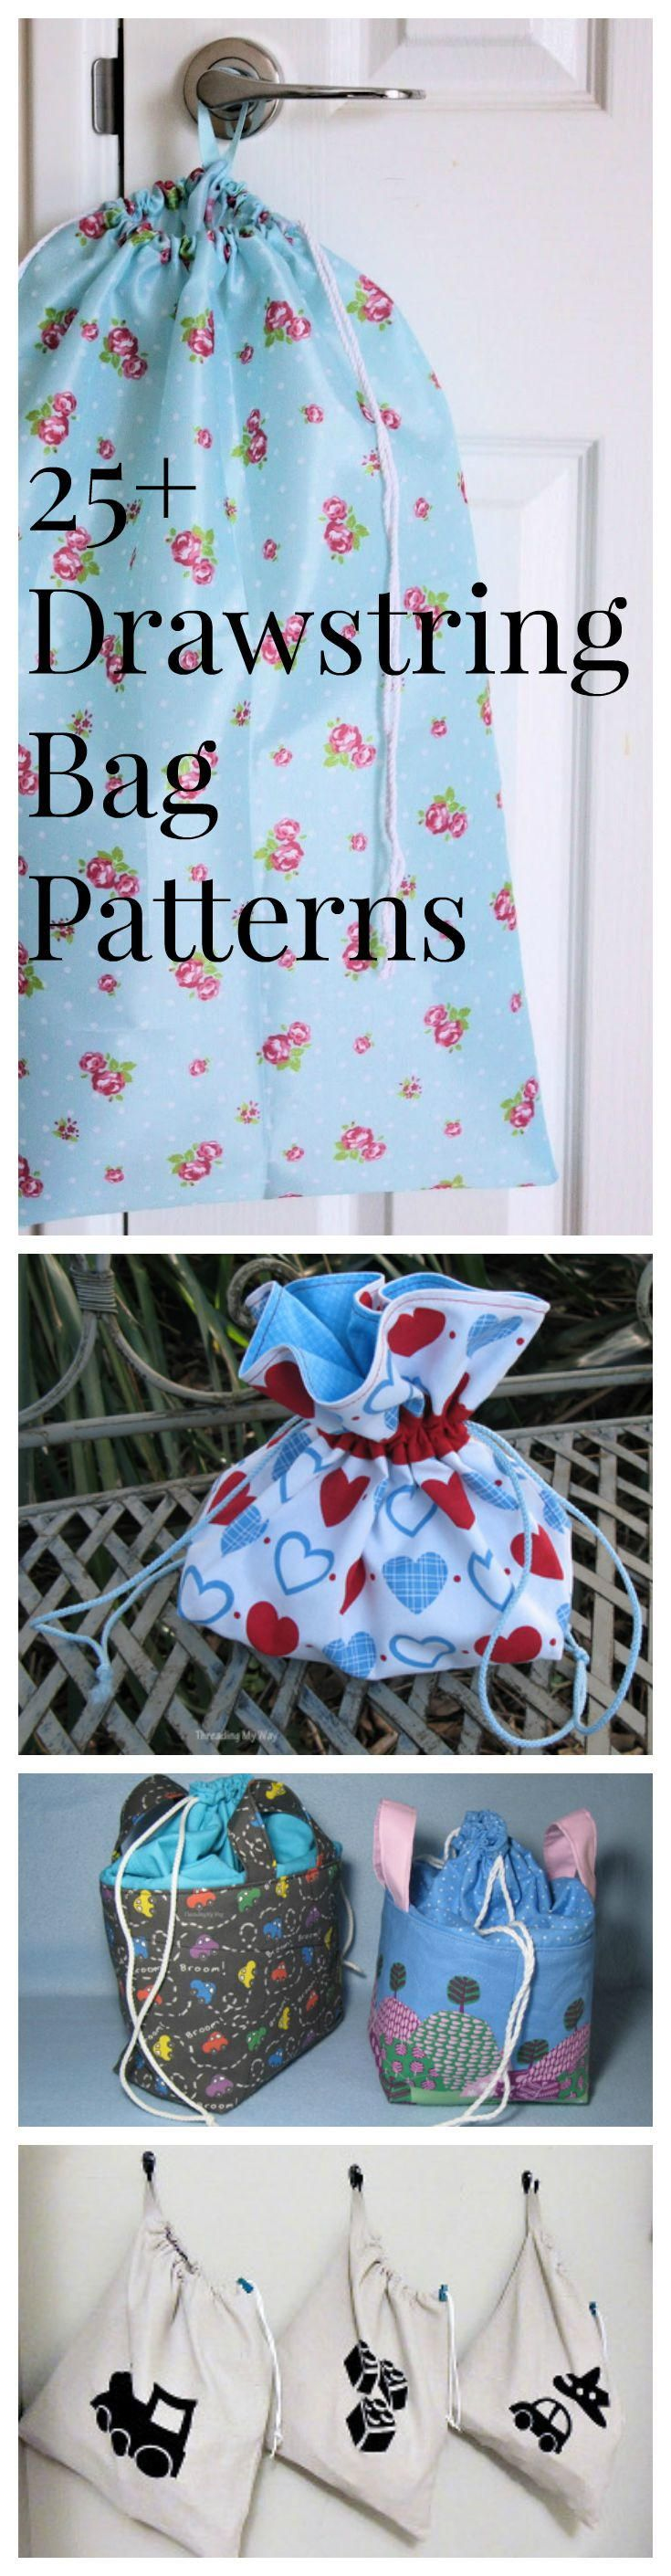 28 How to Make a Drawstring Bag Tutorials and Drawstring Bag Patterns